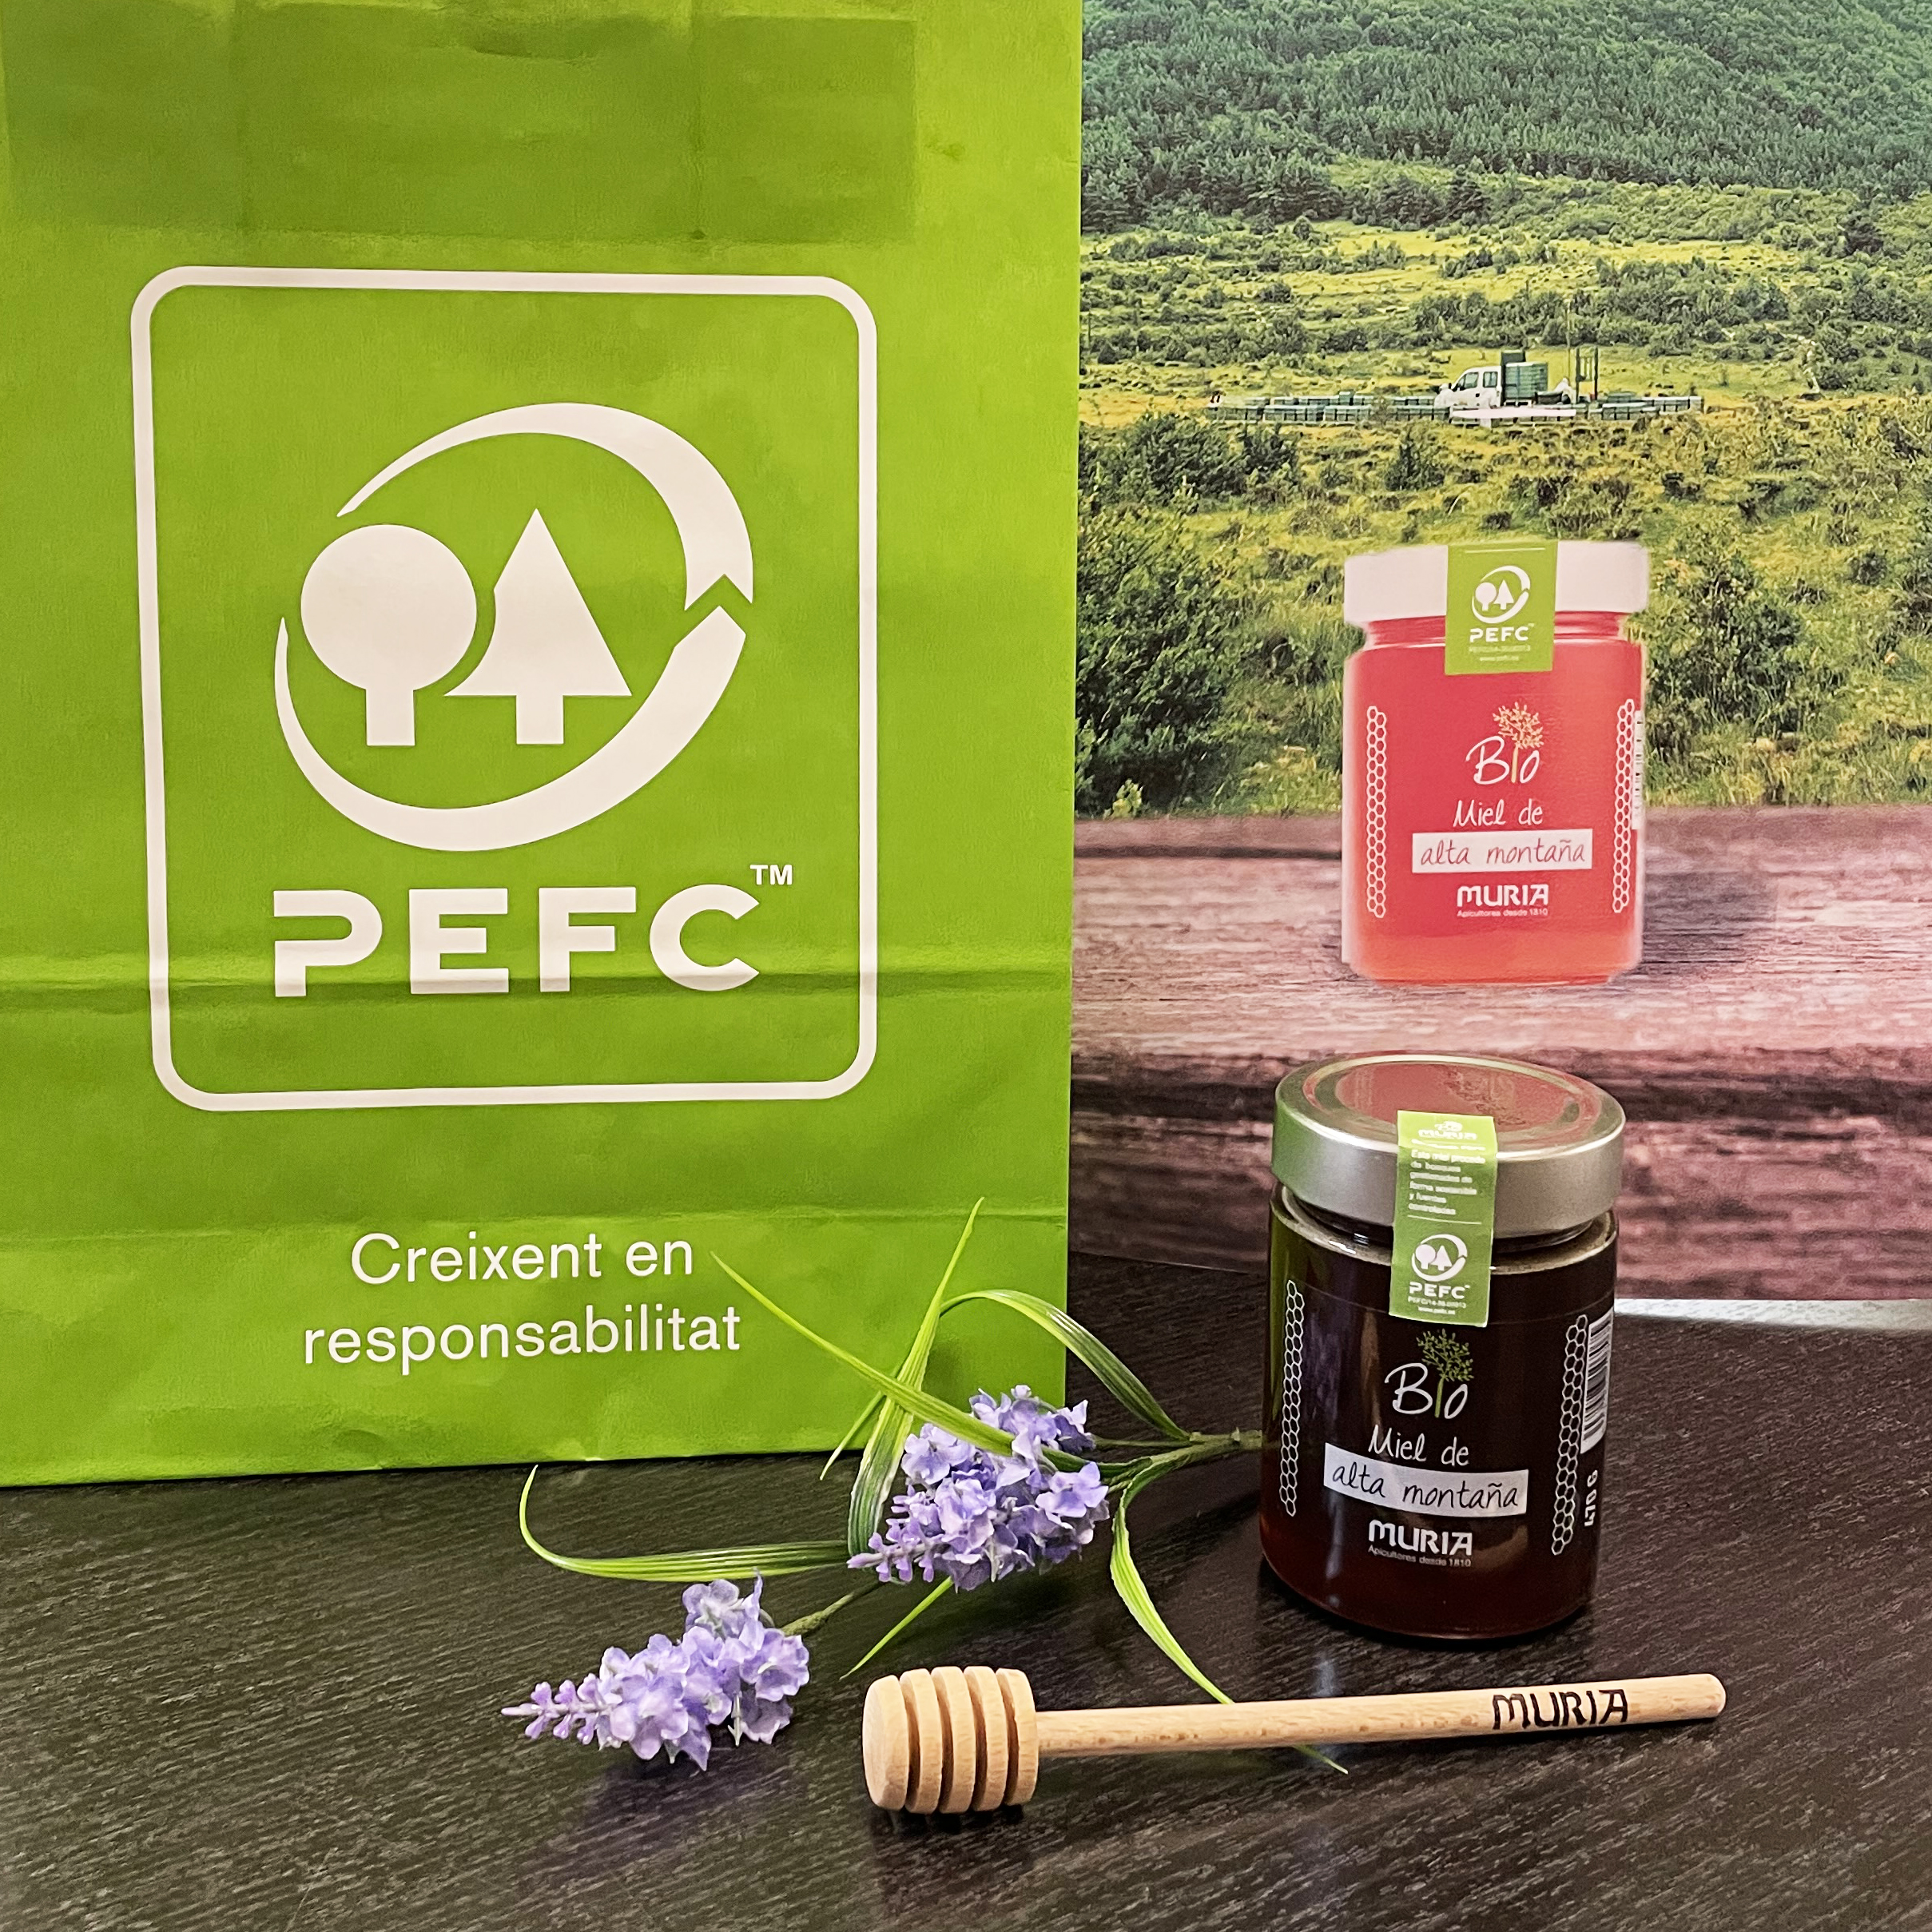 Miel Muria certifies the first honey from sustainable forests